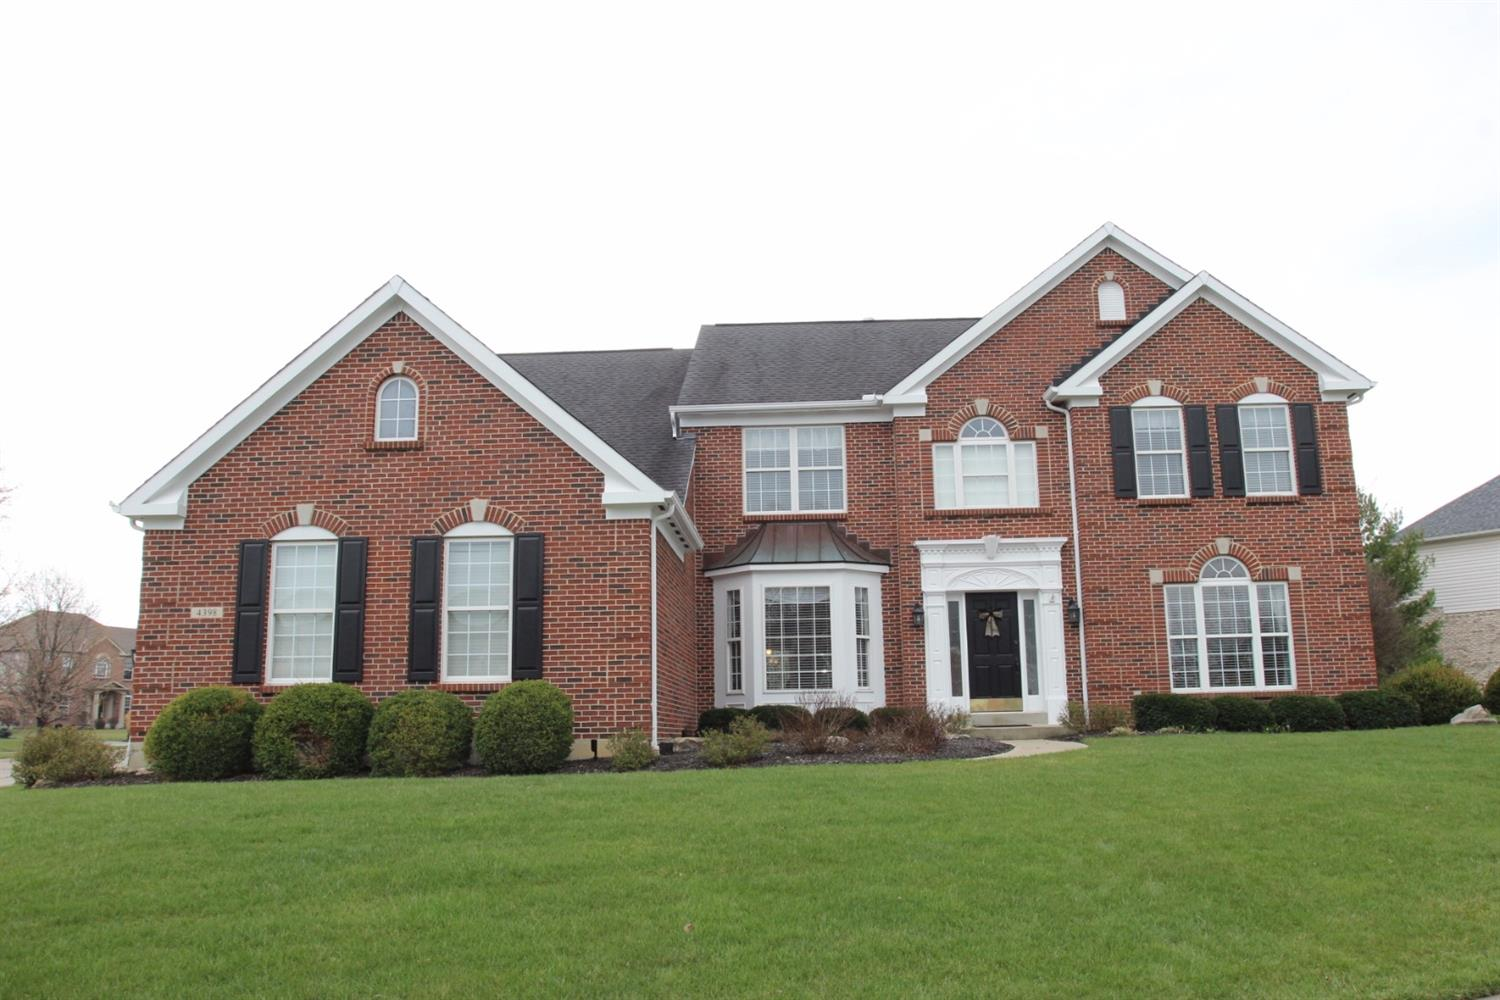 4398 Wilderness Way, Mason, OH 45040